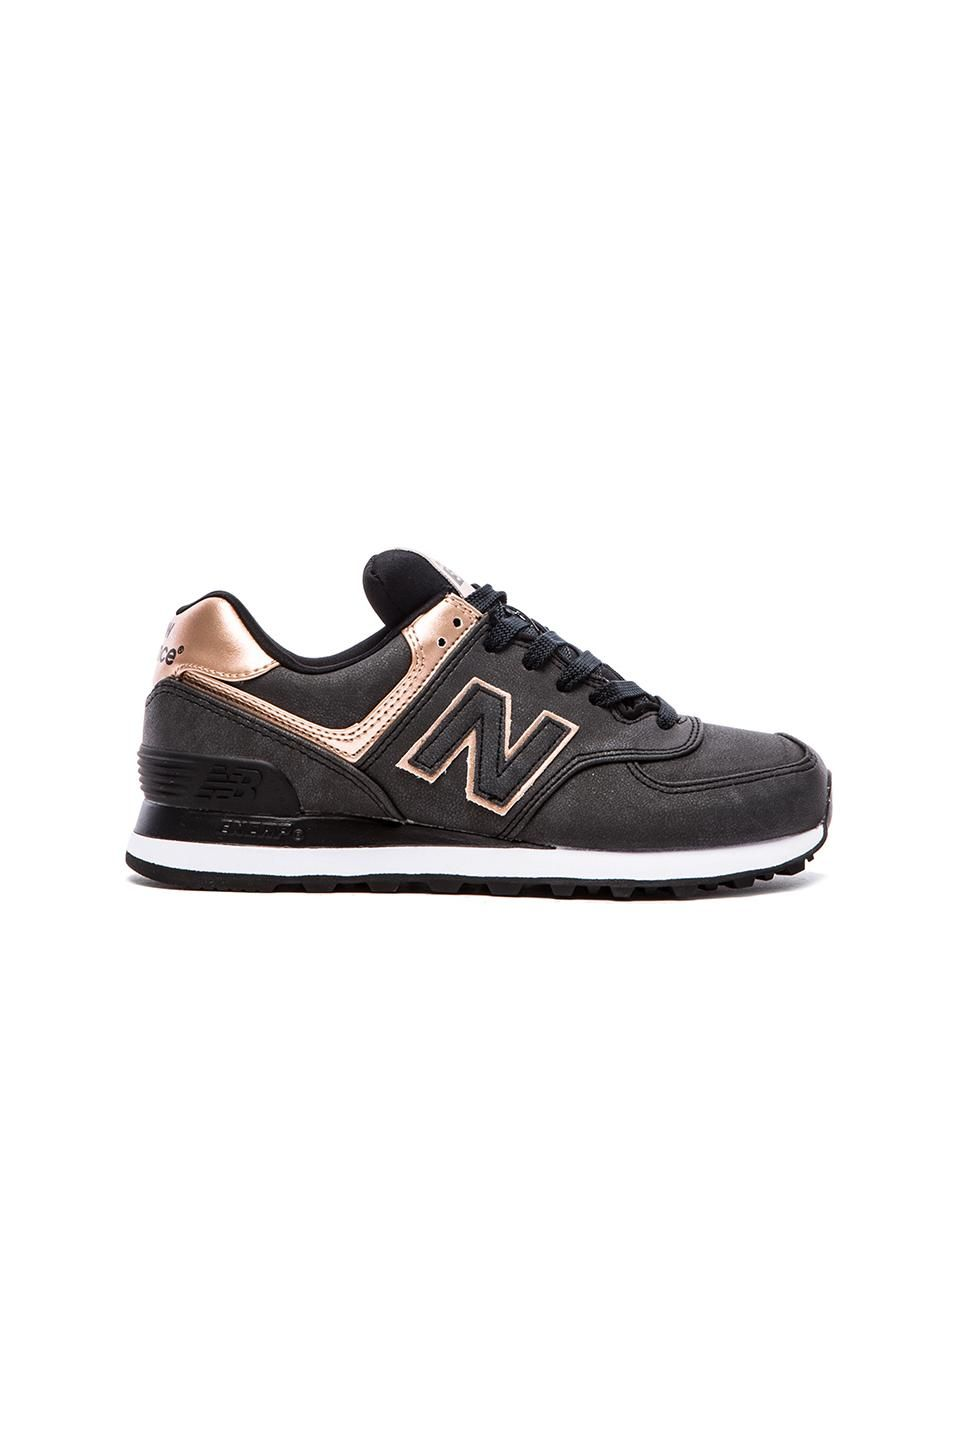 New Balance 574 Precious Metals Collection Sneaker In Charcoal Revolve Chaussures De Sport Mode Chaussure Hiver Chaussures De Princesse